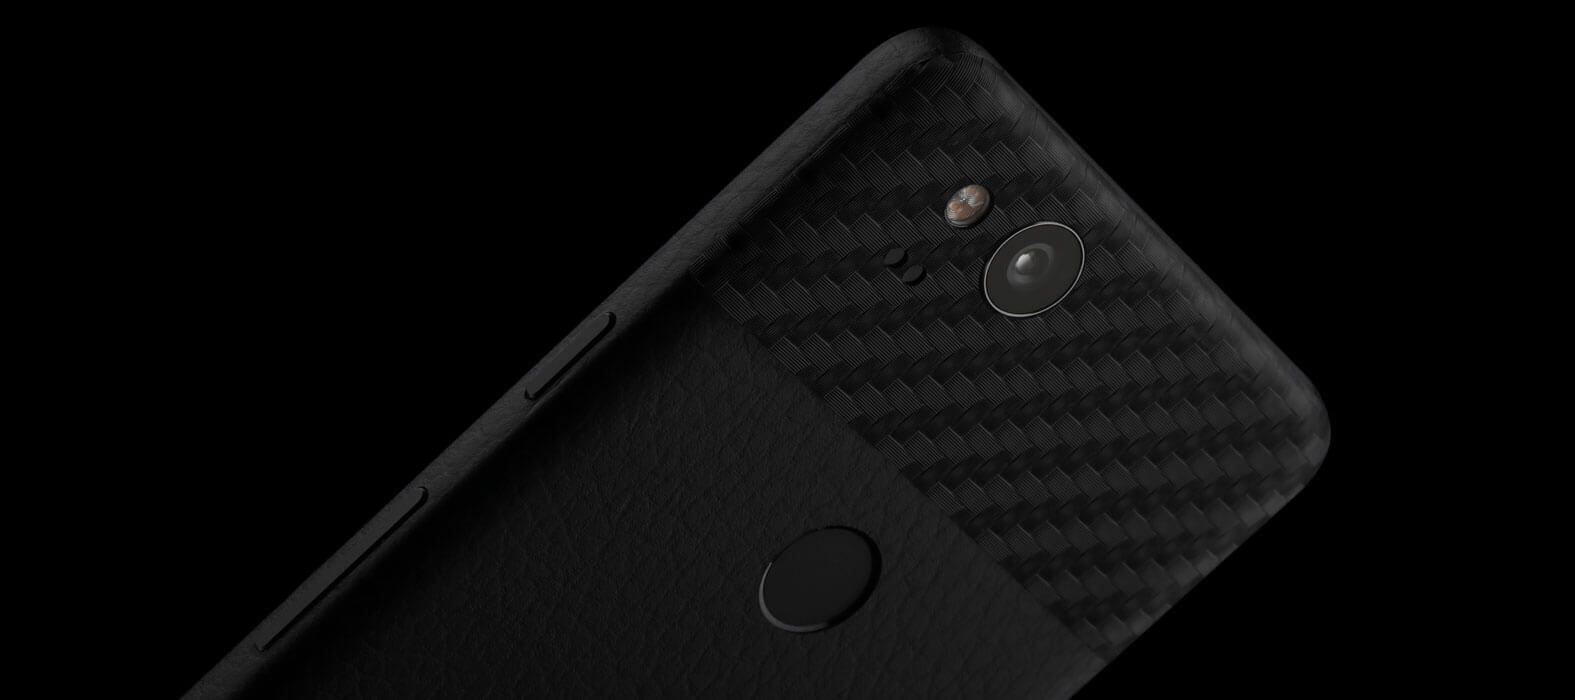 Pixel 2 Wraps, Skins, Decals - Leather